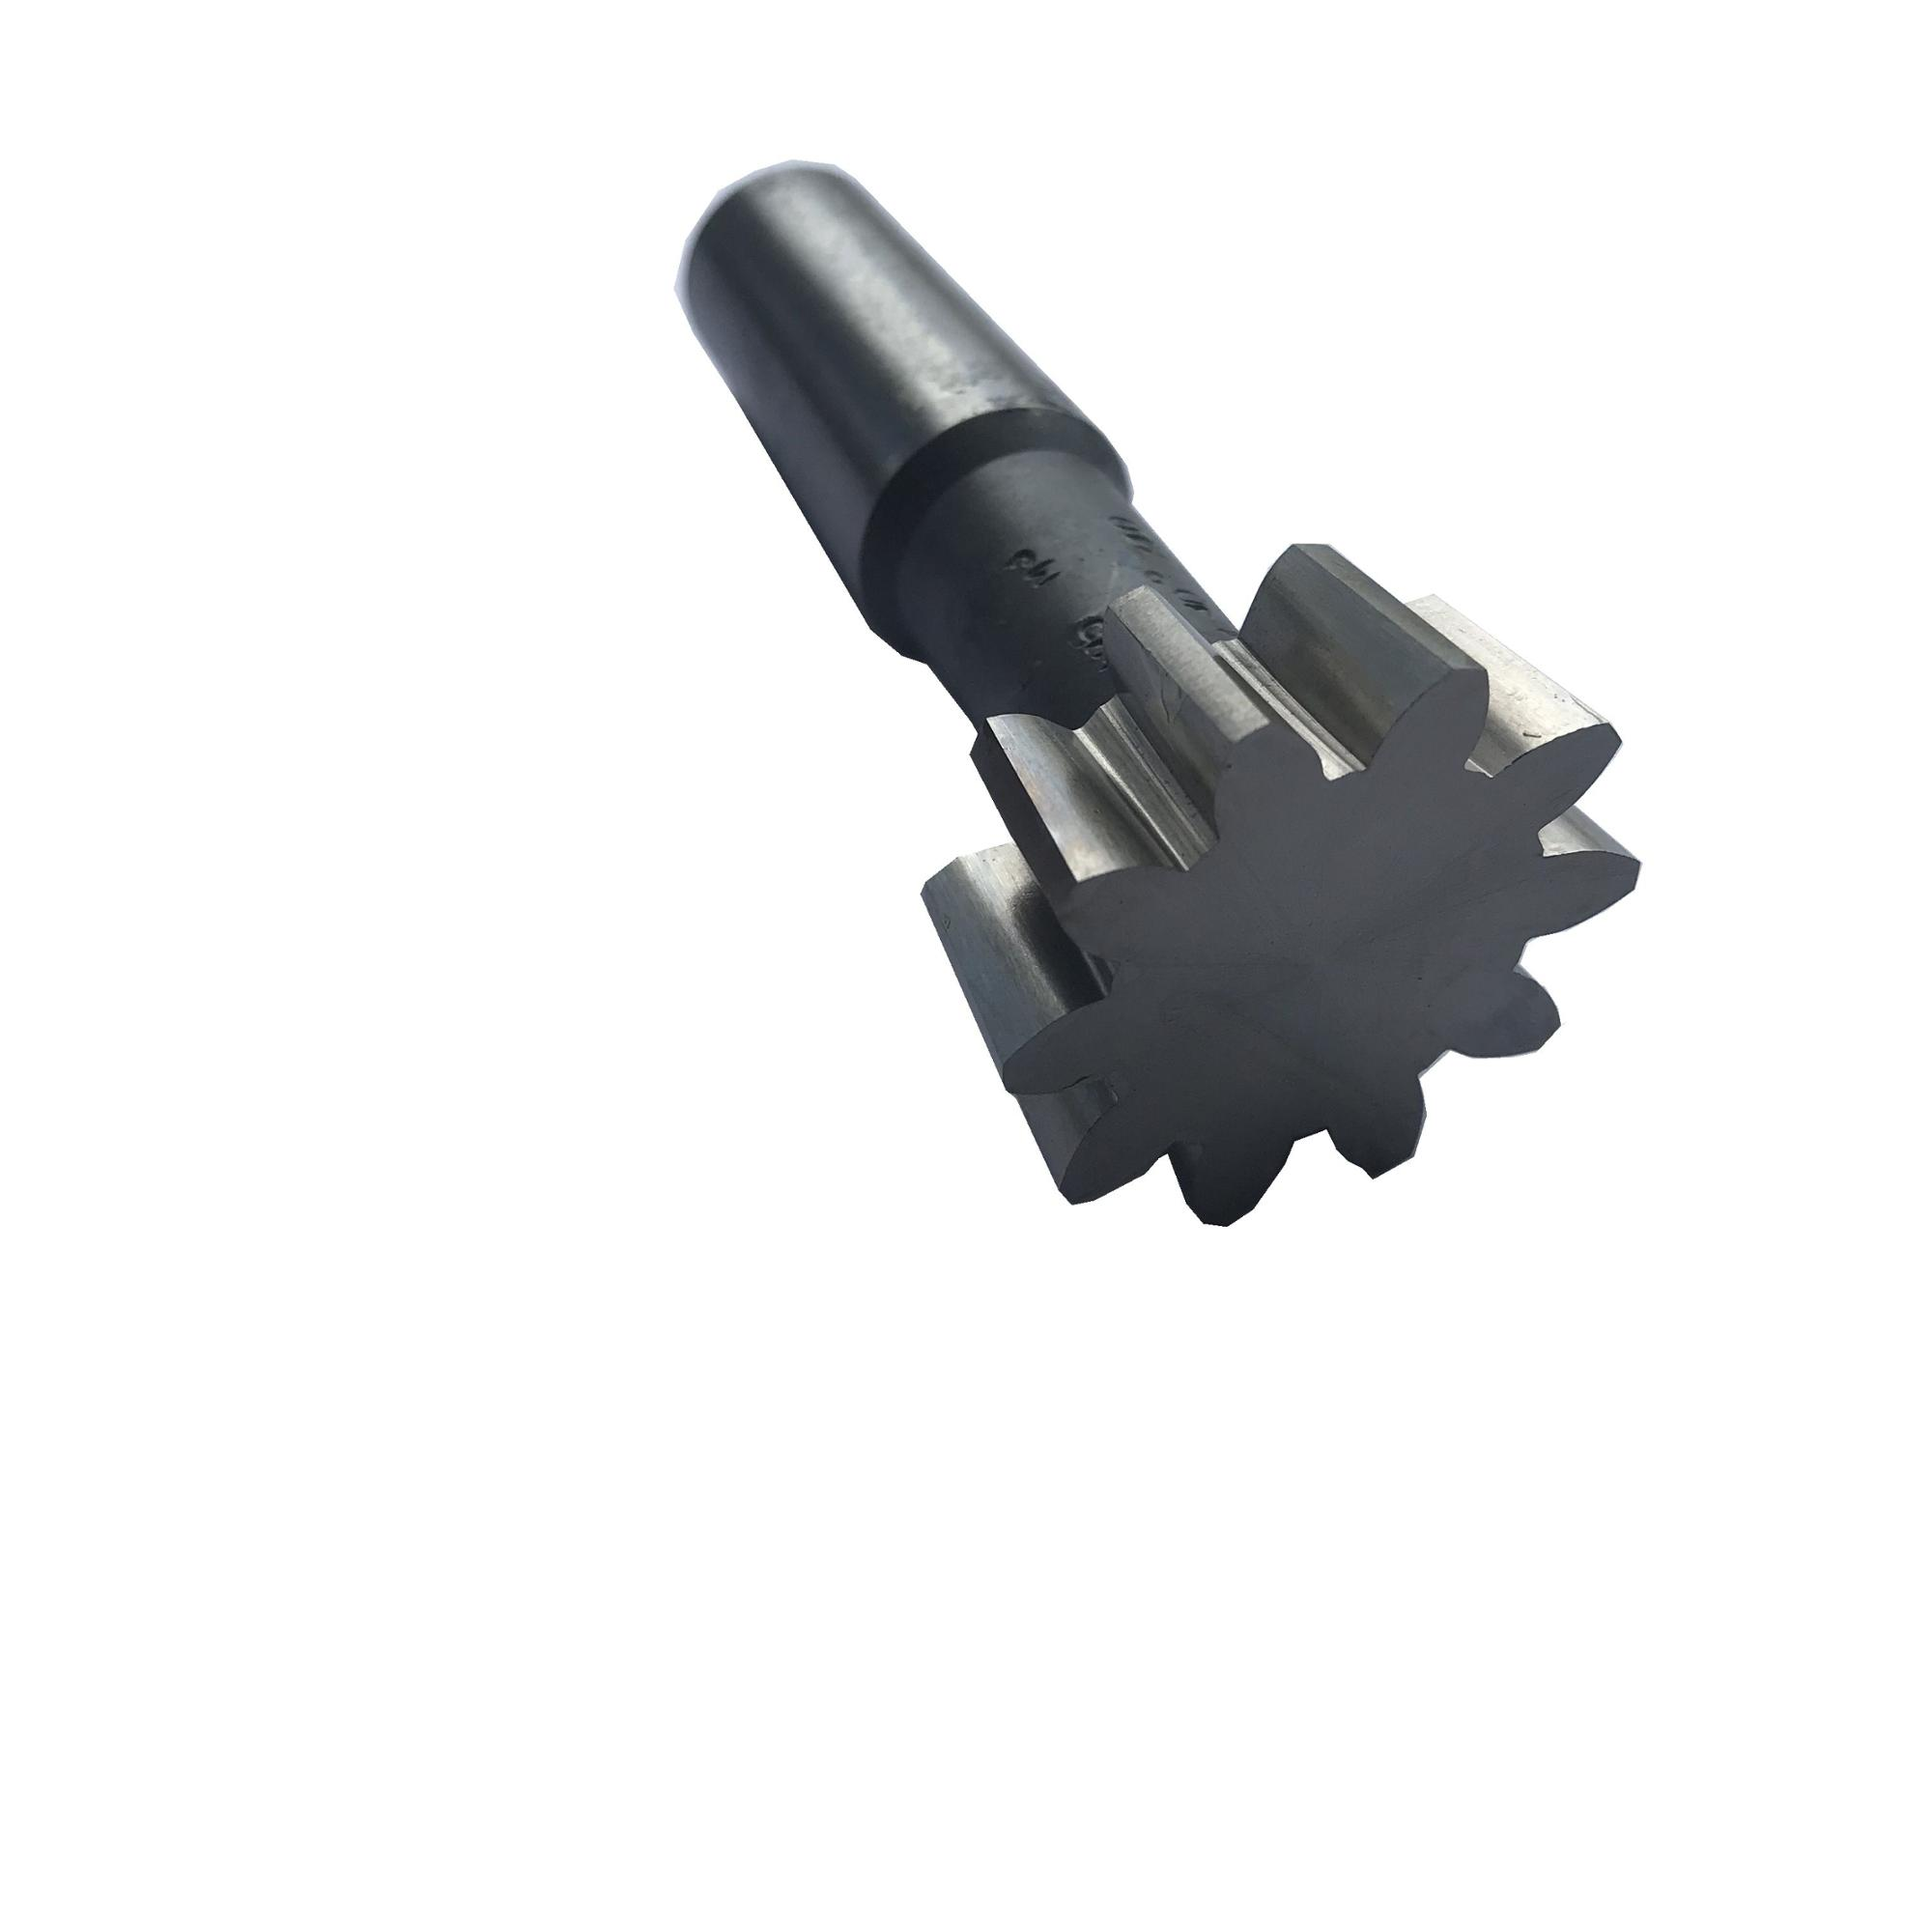 Gear hob milling cutter specification